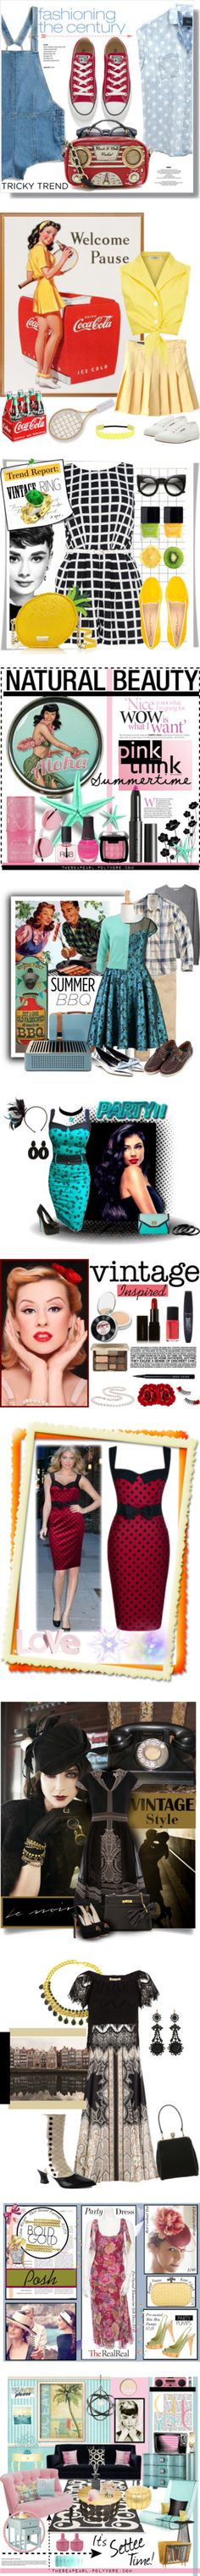 """""""Retro Vintage 2015"""" by yours-styling-best-friend ❤ liked on Polyvore"""